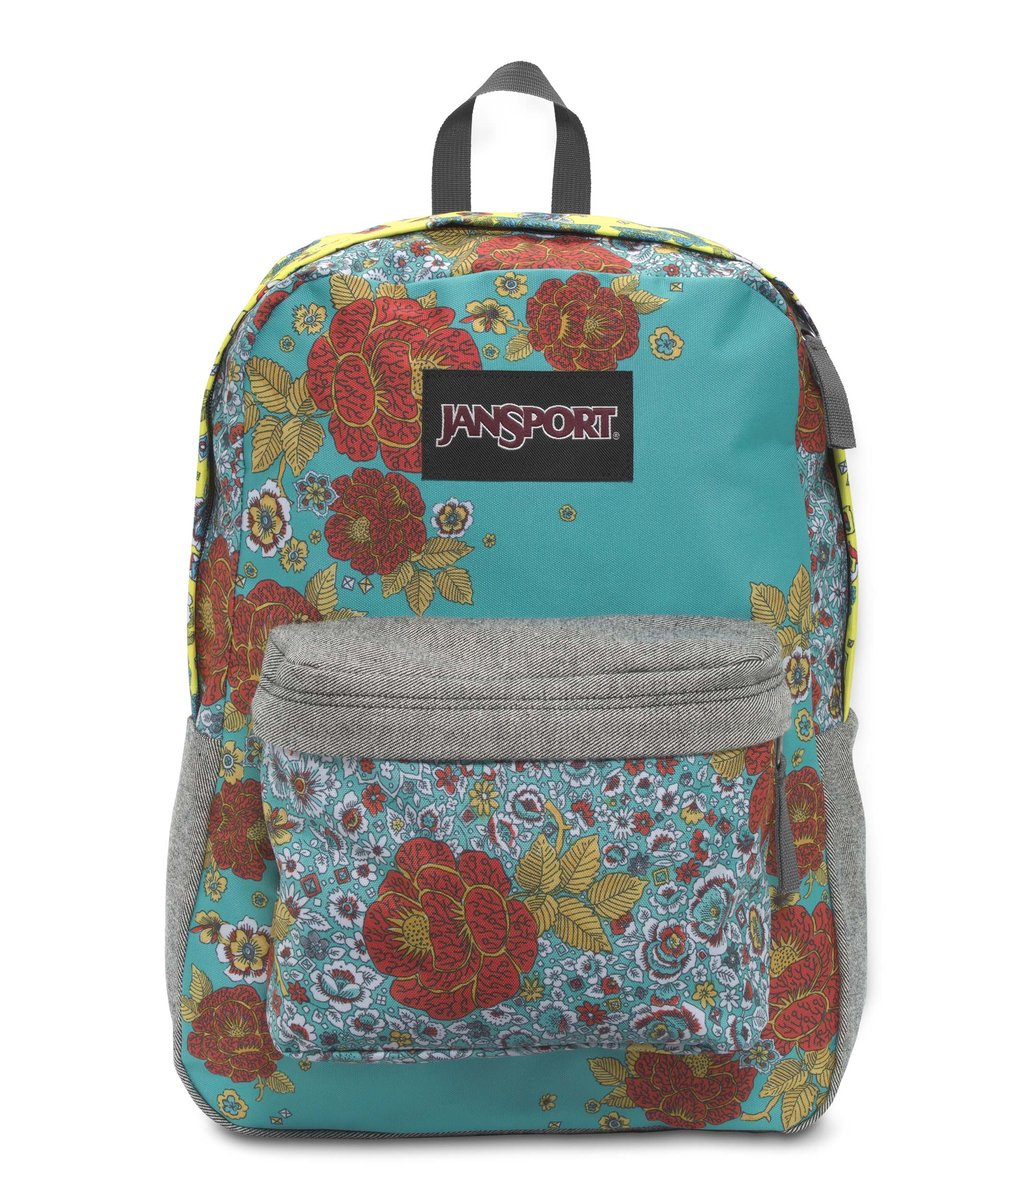 JanSport | JanSport Backpack - Super FX - MULTI PATCHWORK POSEY ...